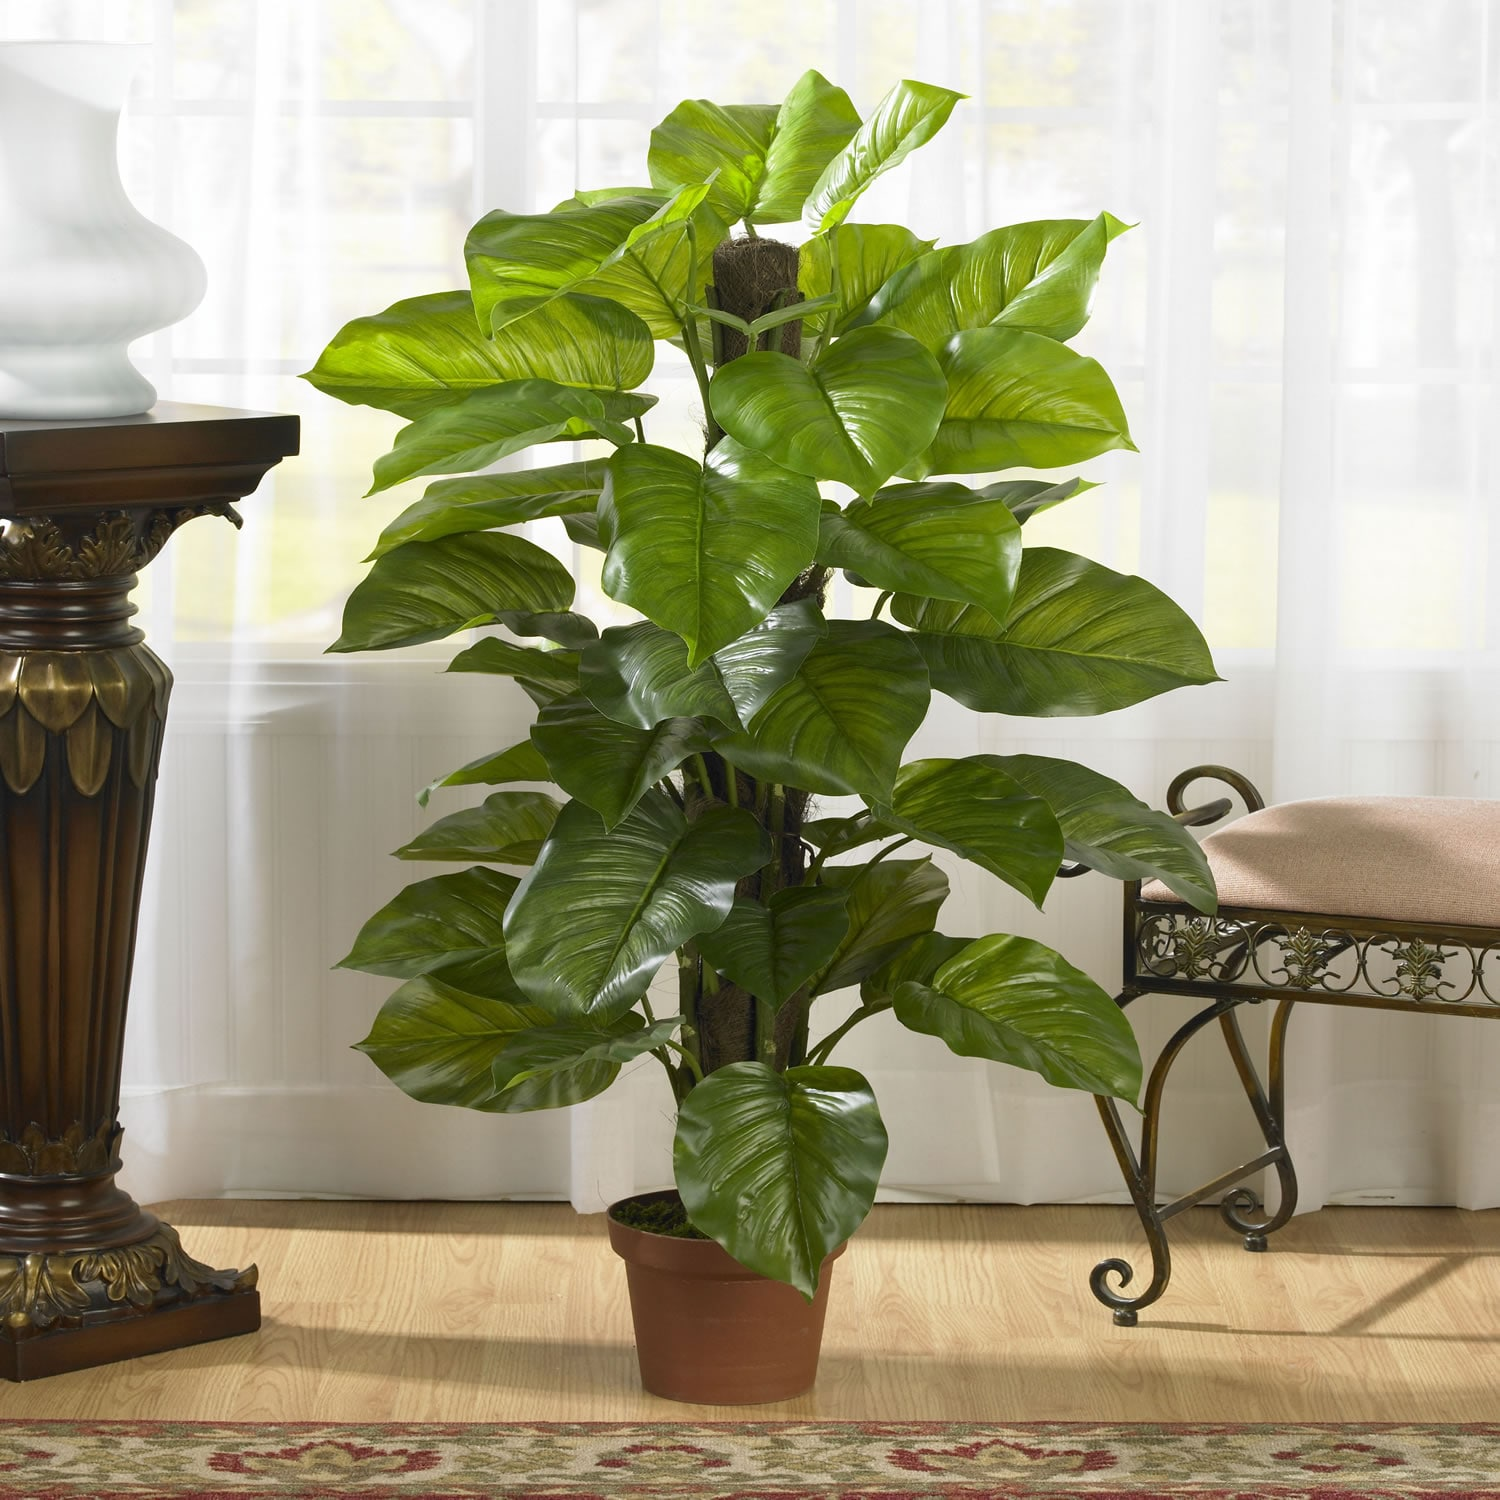 Large Indoor House Plants For Sale Shop Large 52 Inch Leaf Philodendron Silk Plant Real